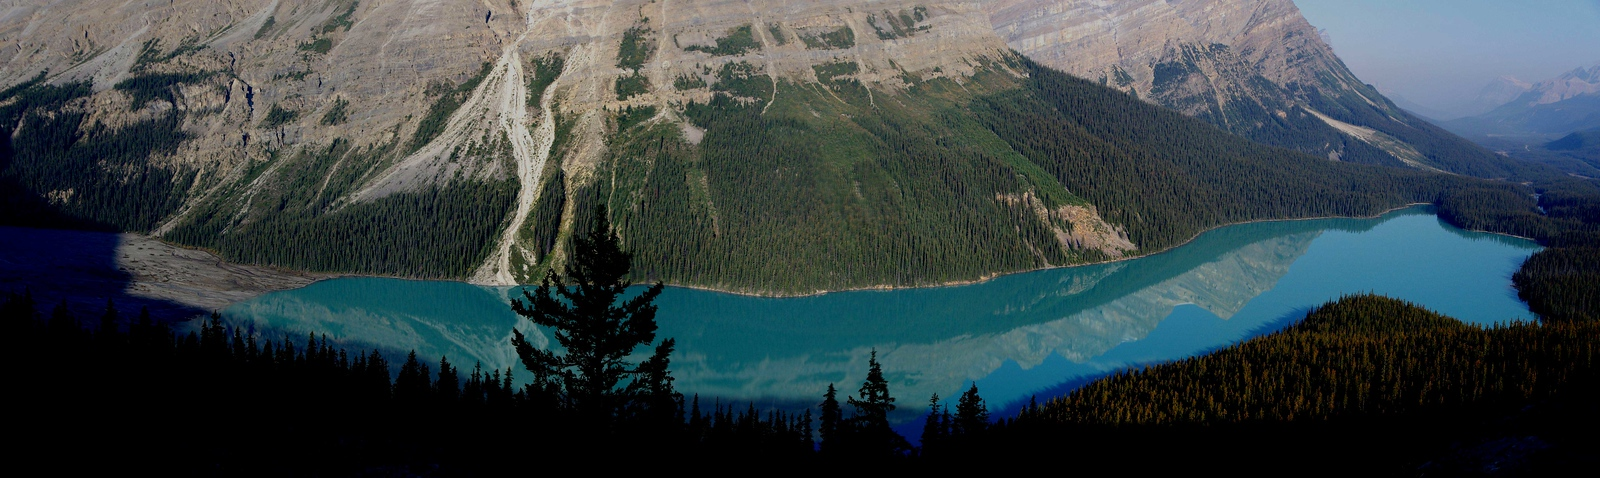 2013 Peyto Lake -Banff